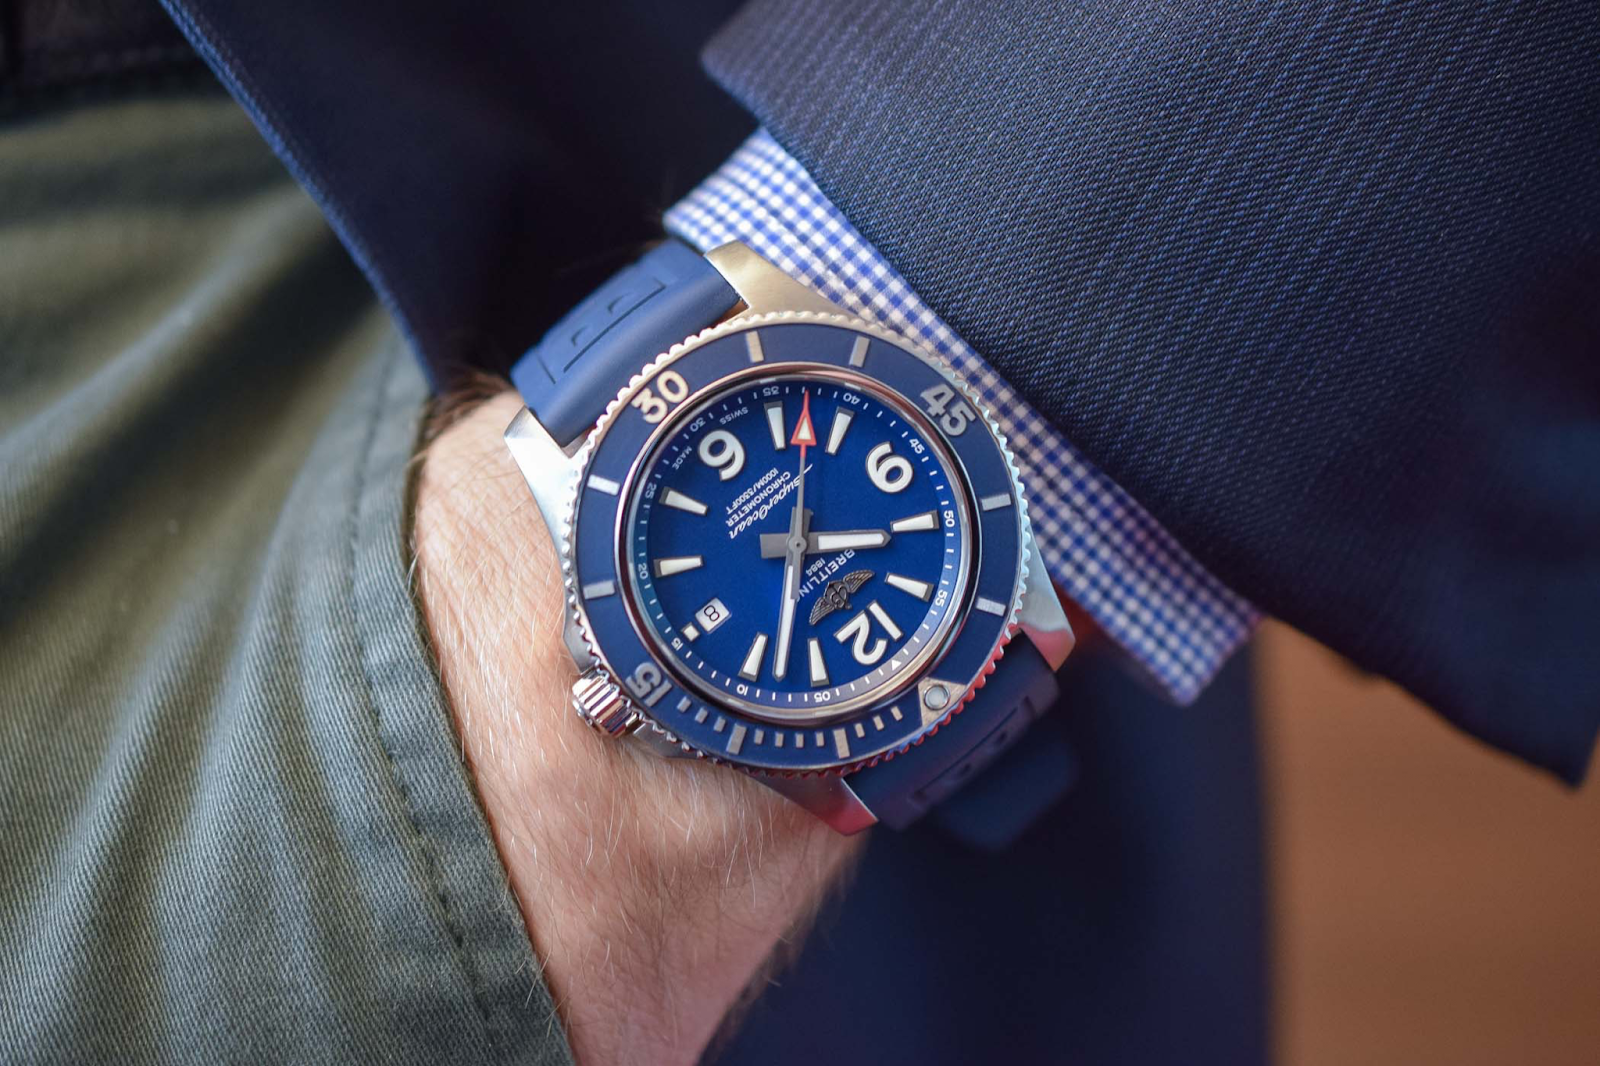 Breitling superocean watch with blue dial